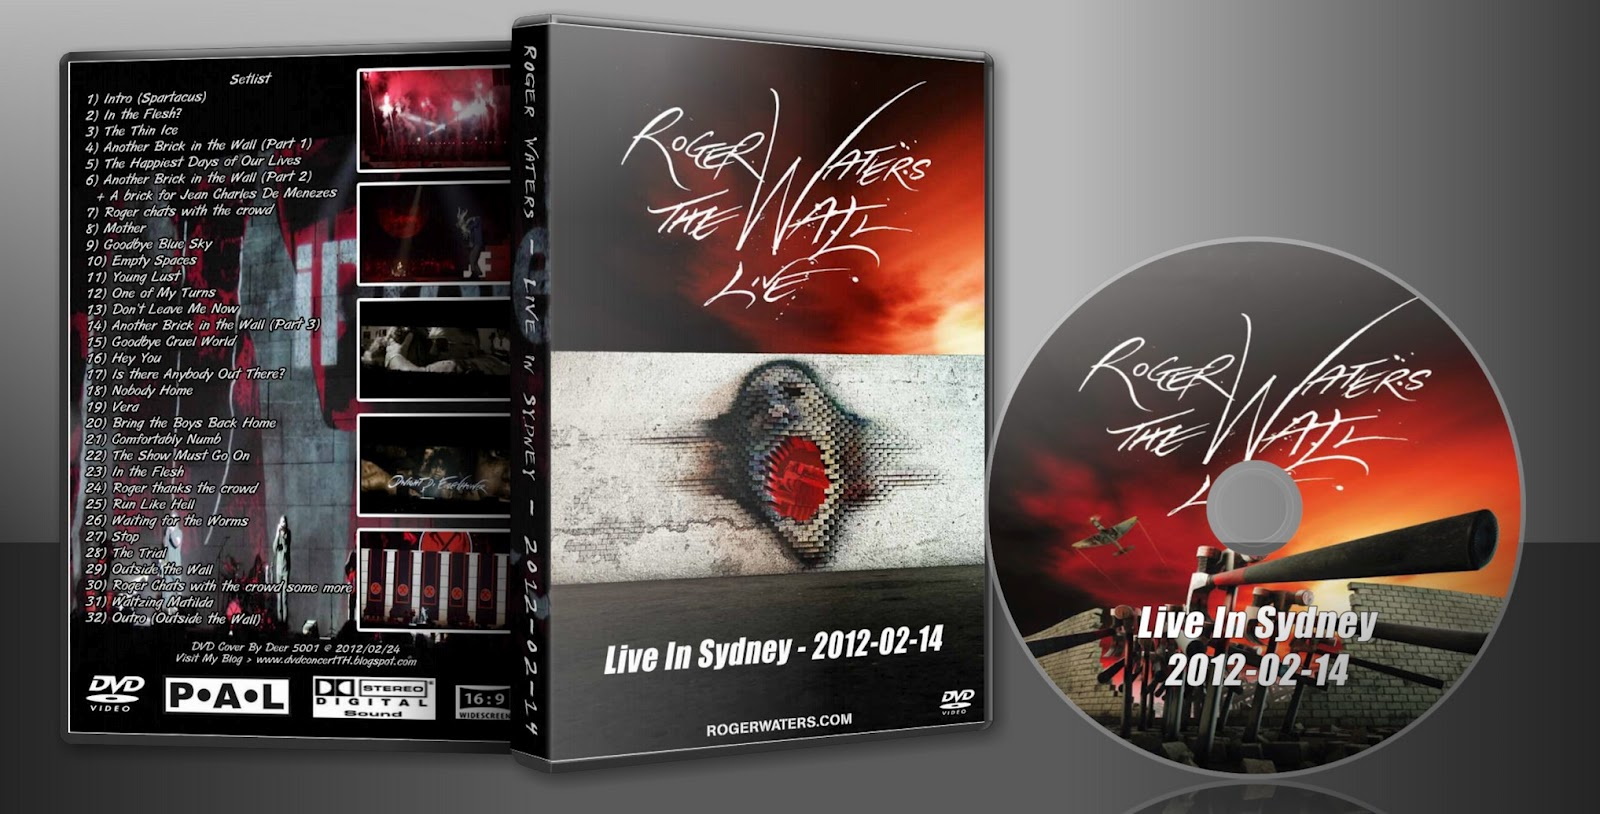 http://3.bp.blogspot.com/-p9wr95MOz5o/T0rELhVQY3I/AAAAAAAAFHQ/9HIKAQCMJbM/s1600/DVD+Cover+For+Show+-+Roger+Waters+-+2012-02-14+-+Live+in+Sydney.jpg